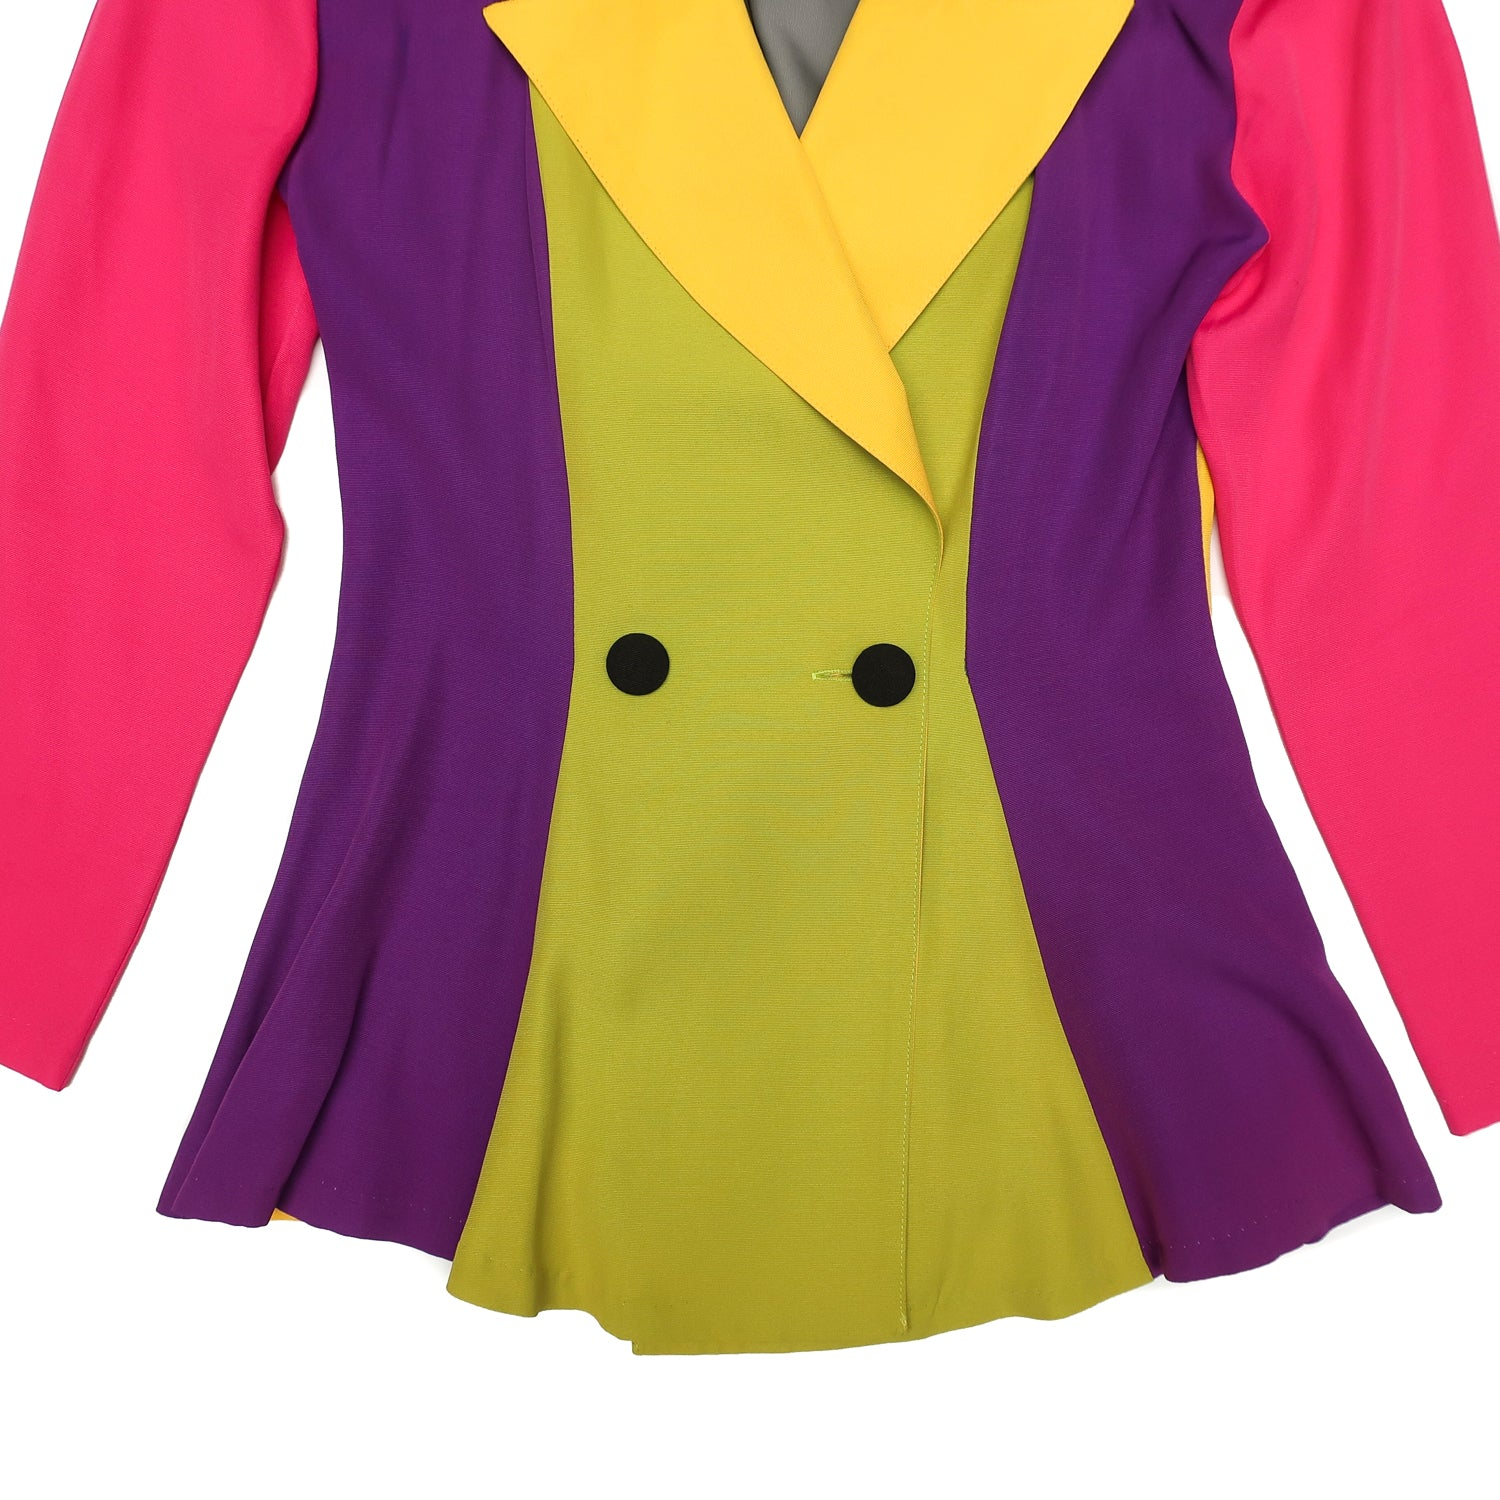 Second Room Vintage Clothing. Vintage 90s color block blazer in neon pink, purple, yellow, green and black, with black mesh panel in the back with colorful criss cross fabric strips. This blazer is double breasted, and is quite fitted at the waist, and then flares out with a peplum style. Free North American shipping on all orders.